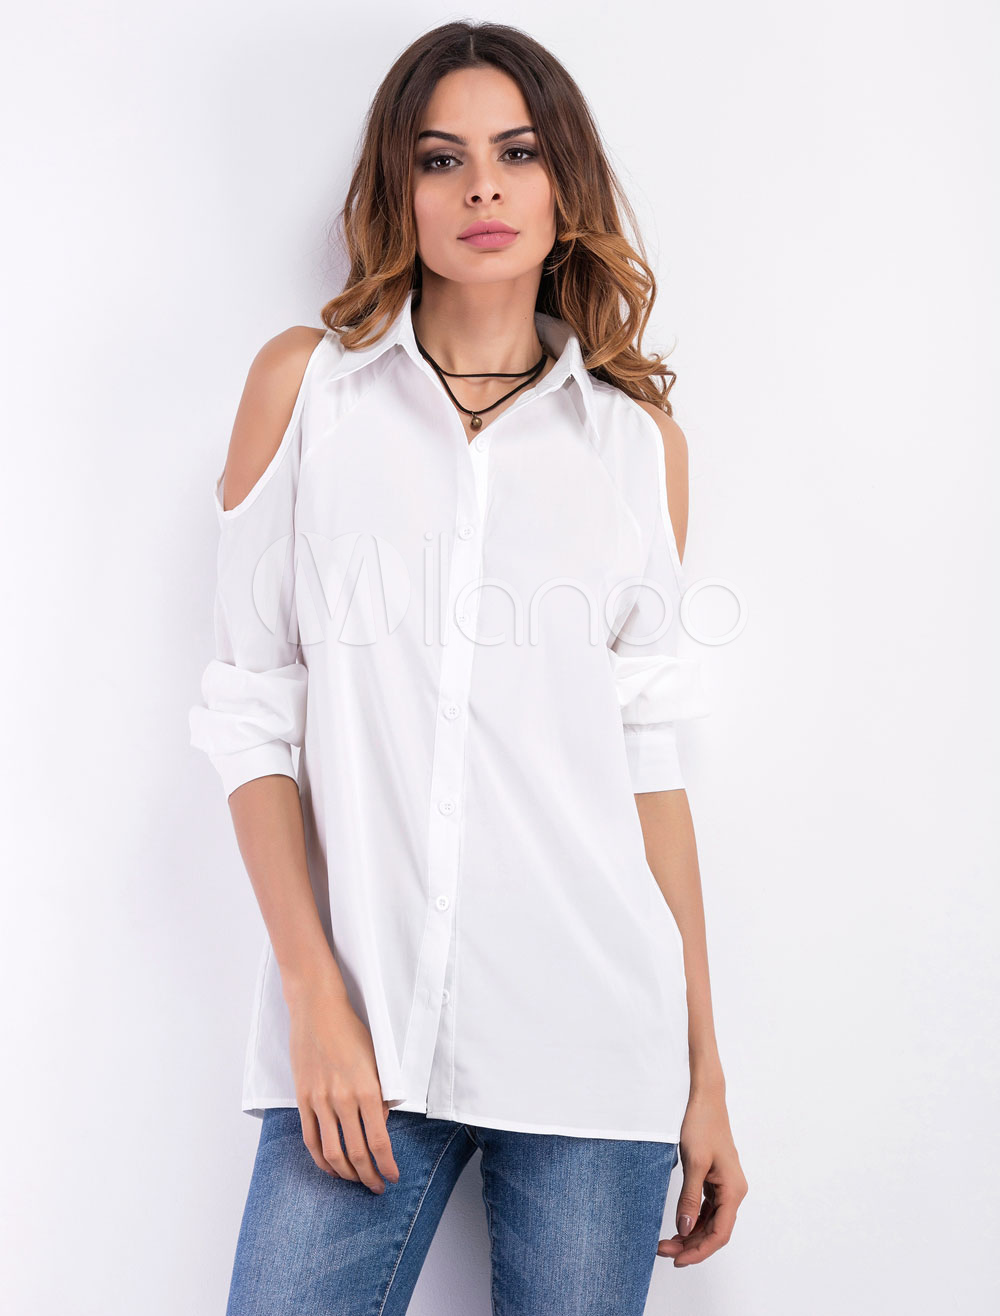 Women's White Shirts Cold Shoulder Long Sleeve Casual Blouses thumbnail